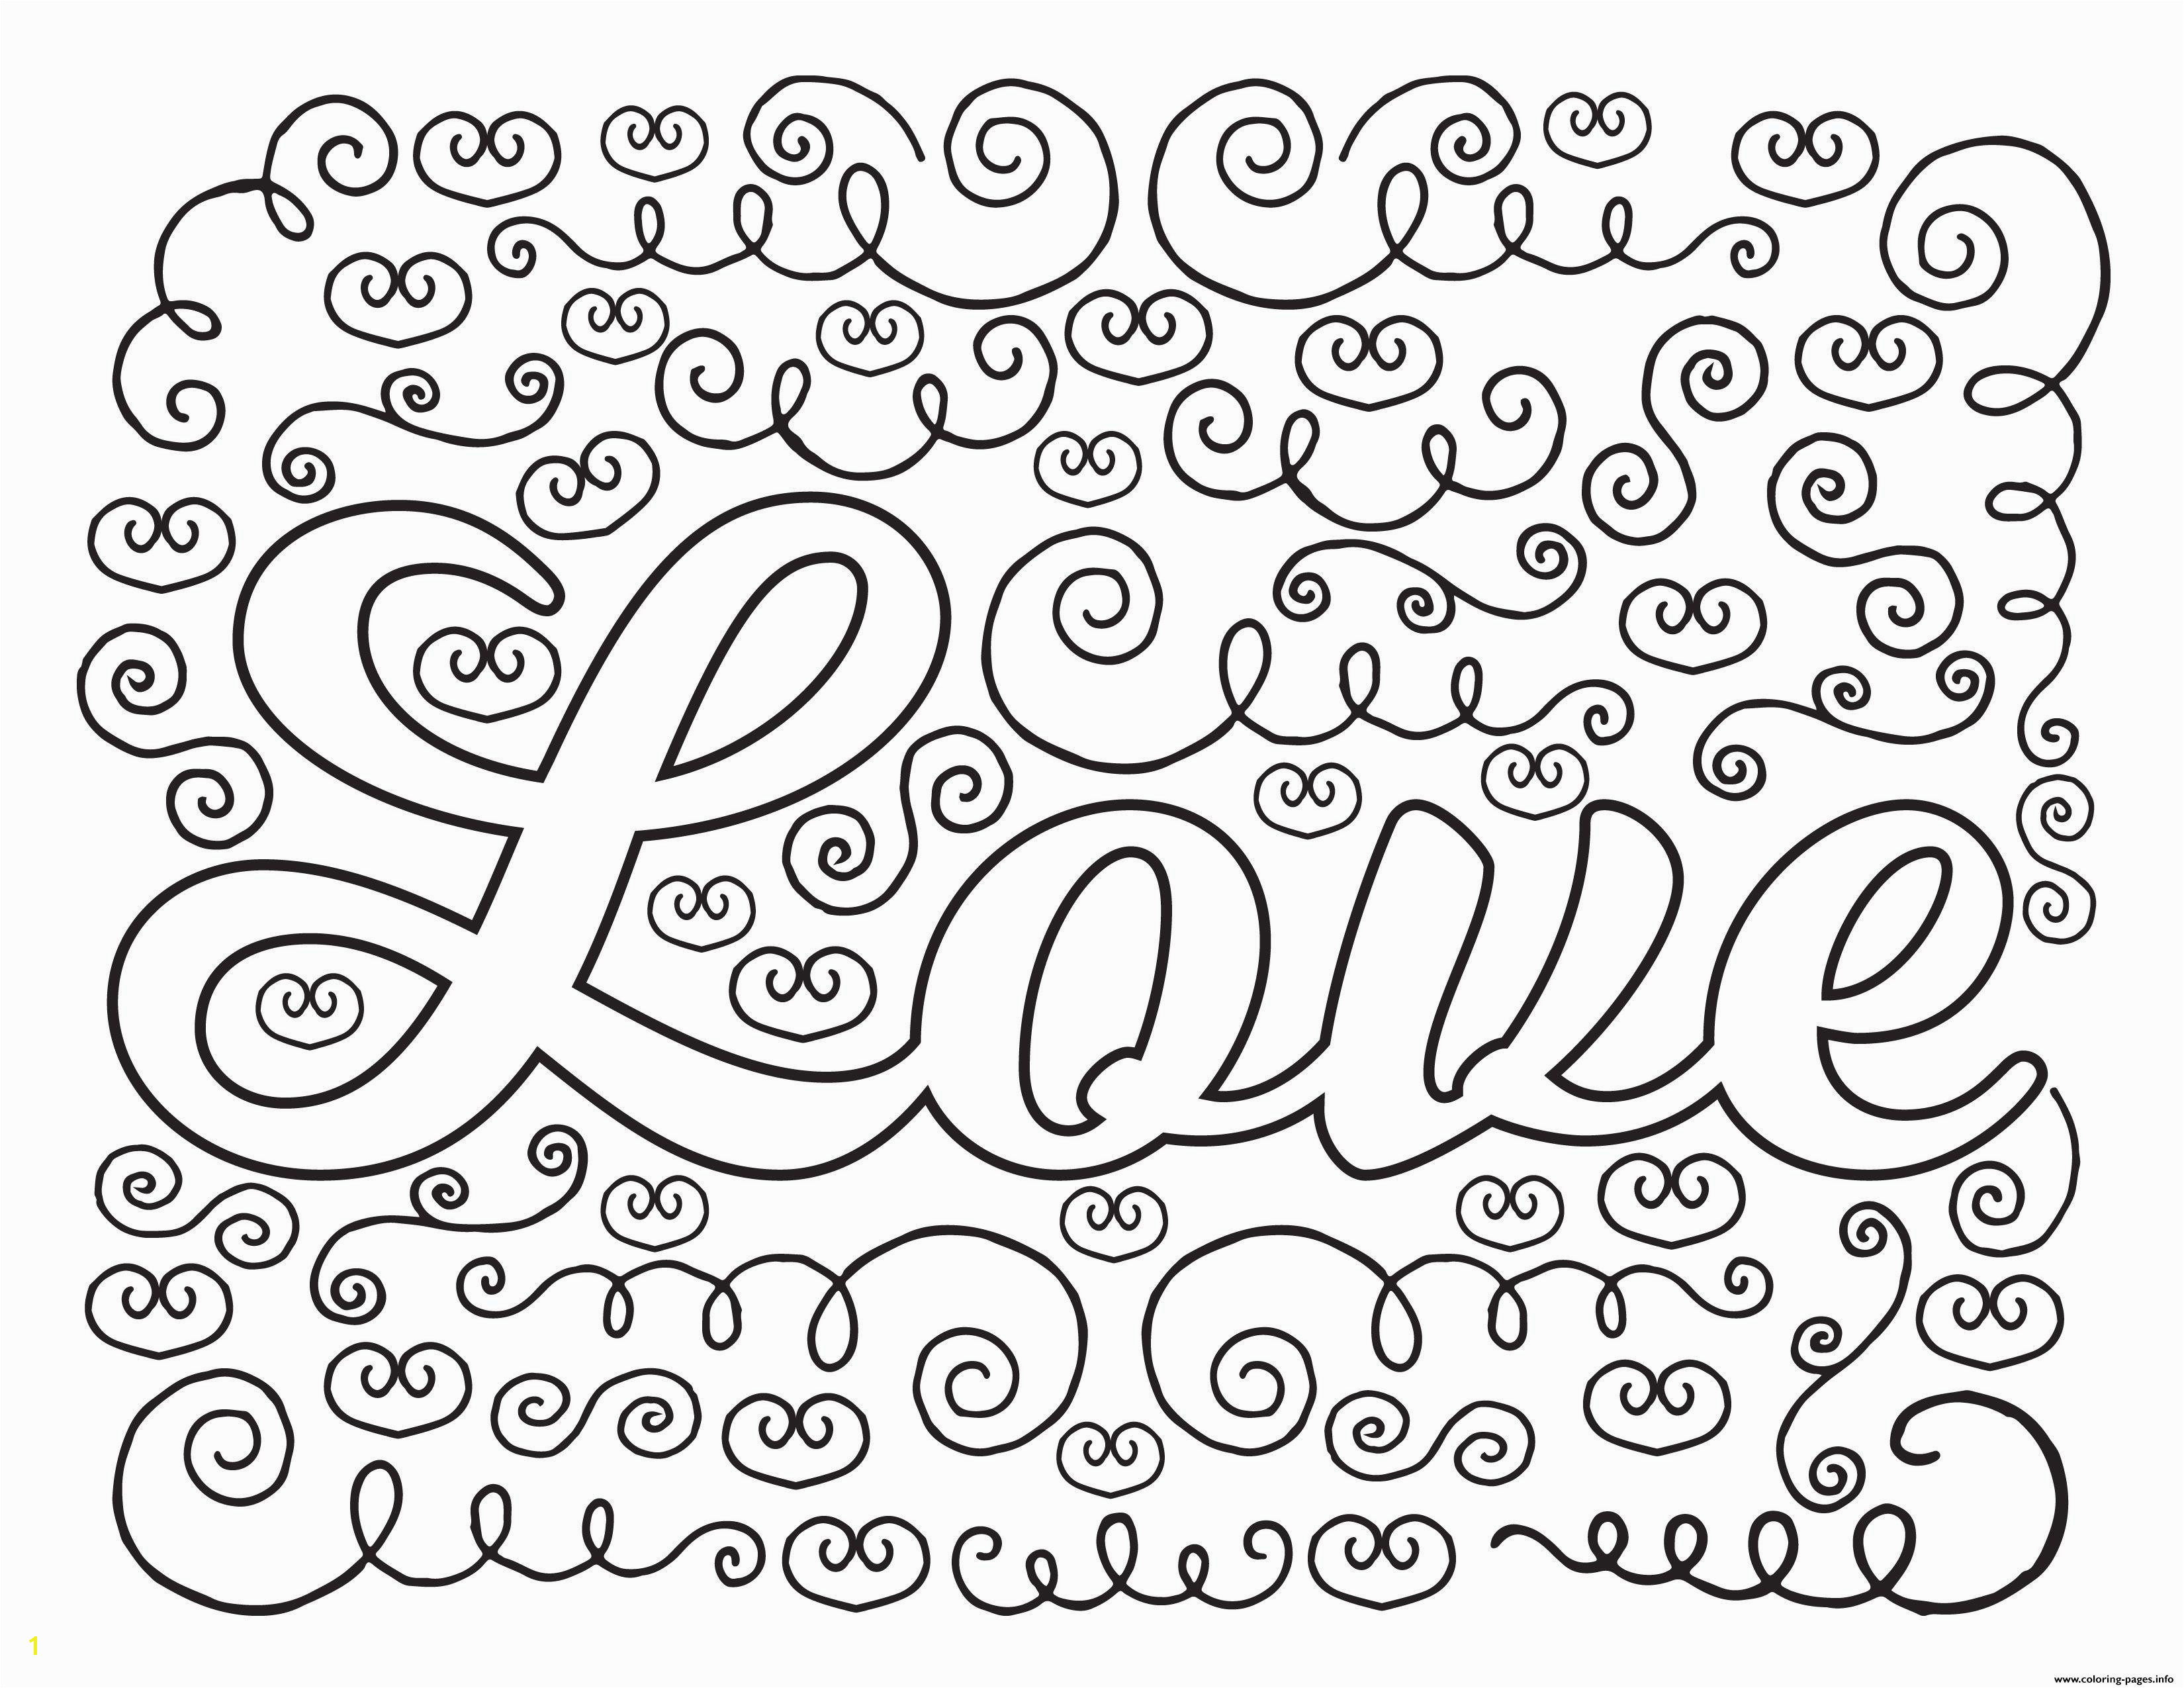 Printable Fruits New Love Coloring Pages for Adults Best Best Kawaii Coloring Pages Od